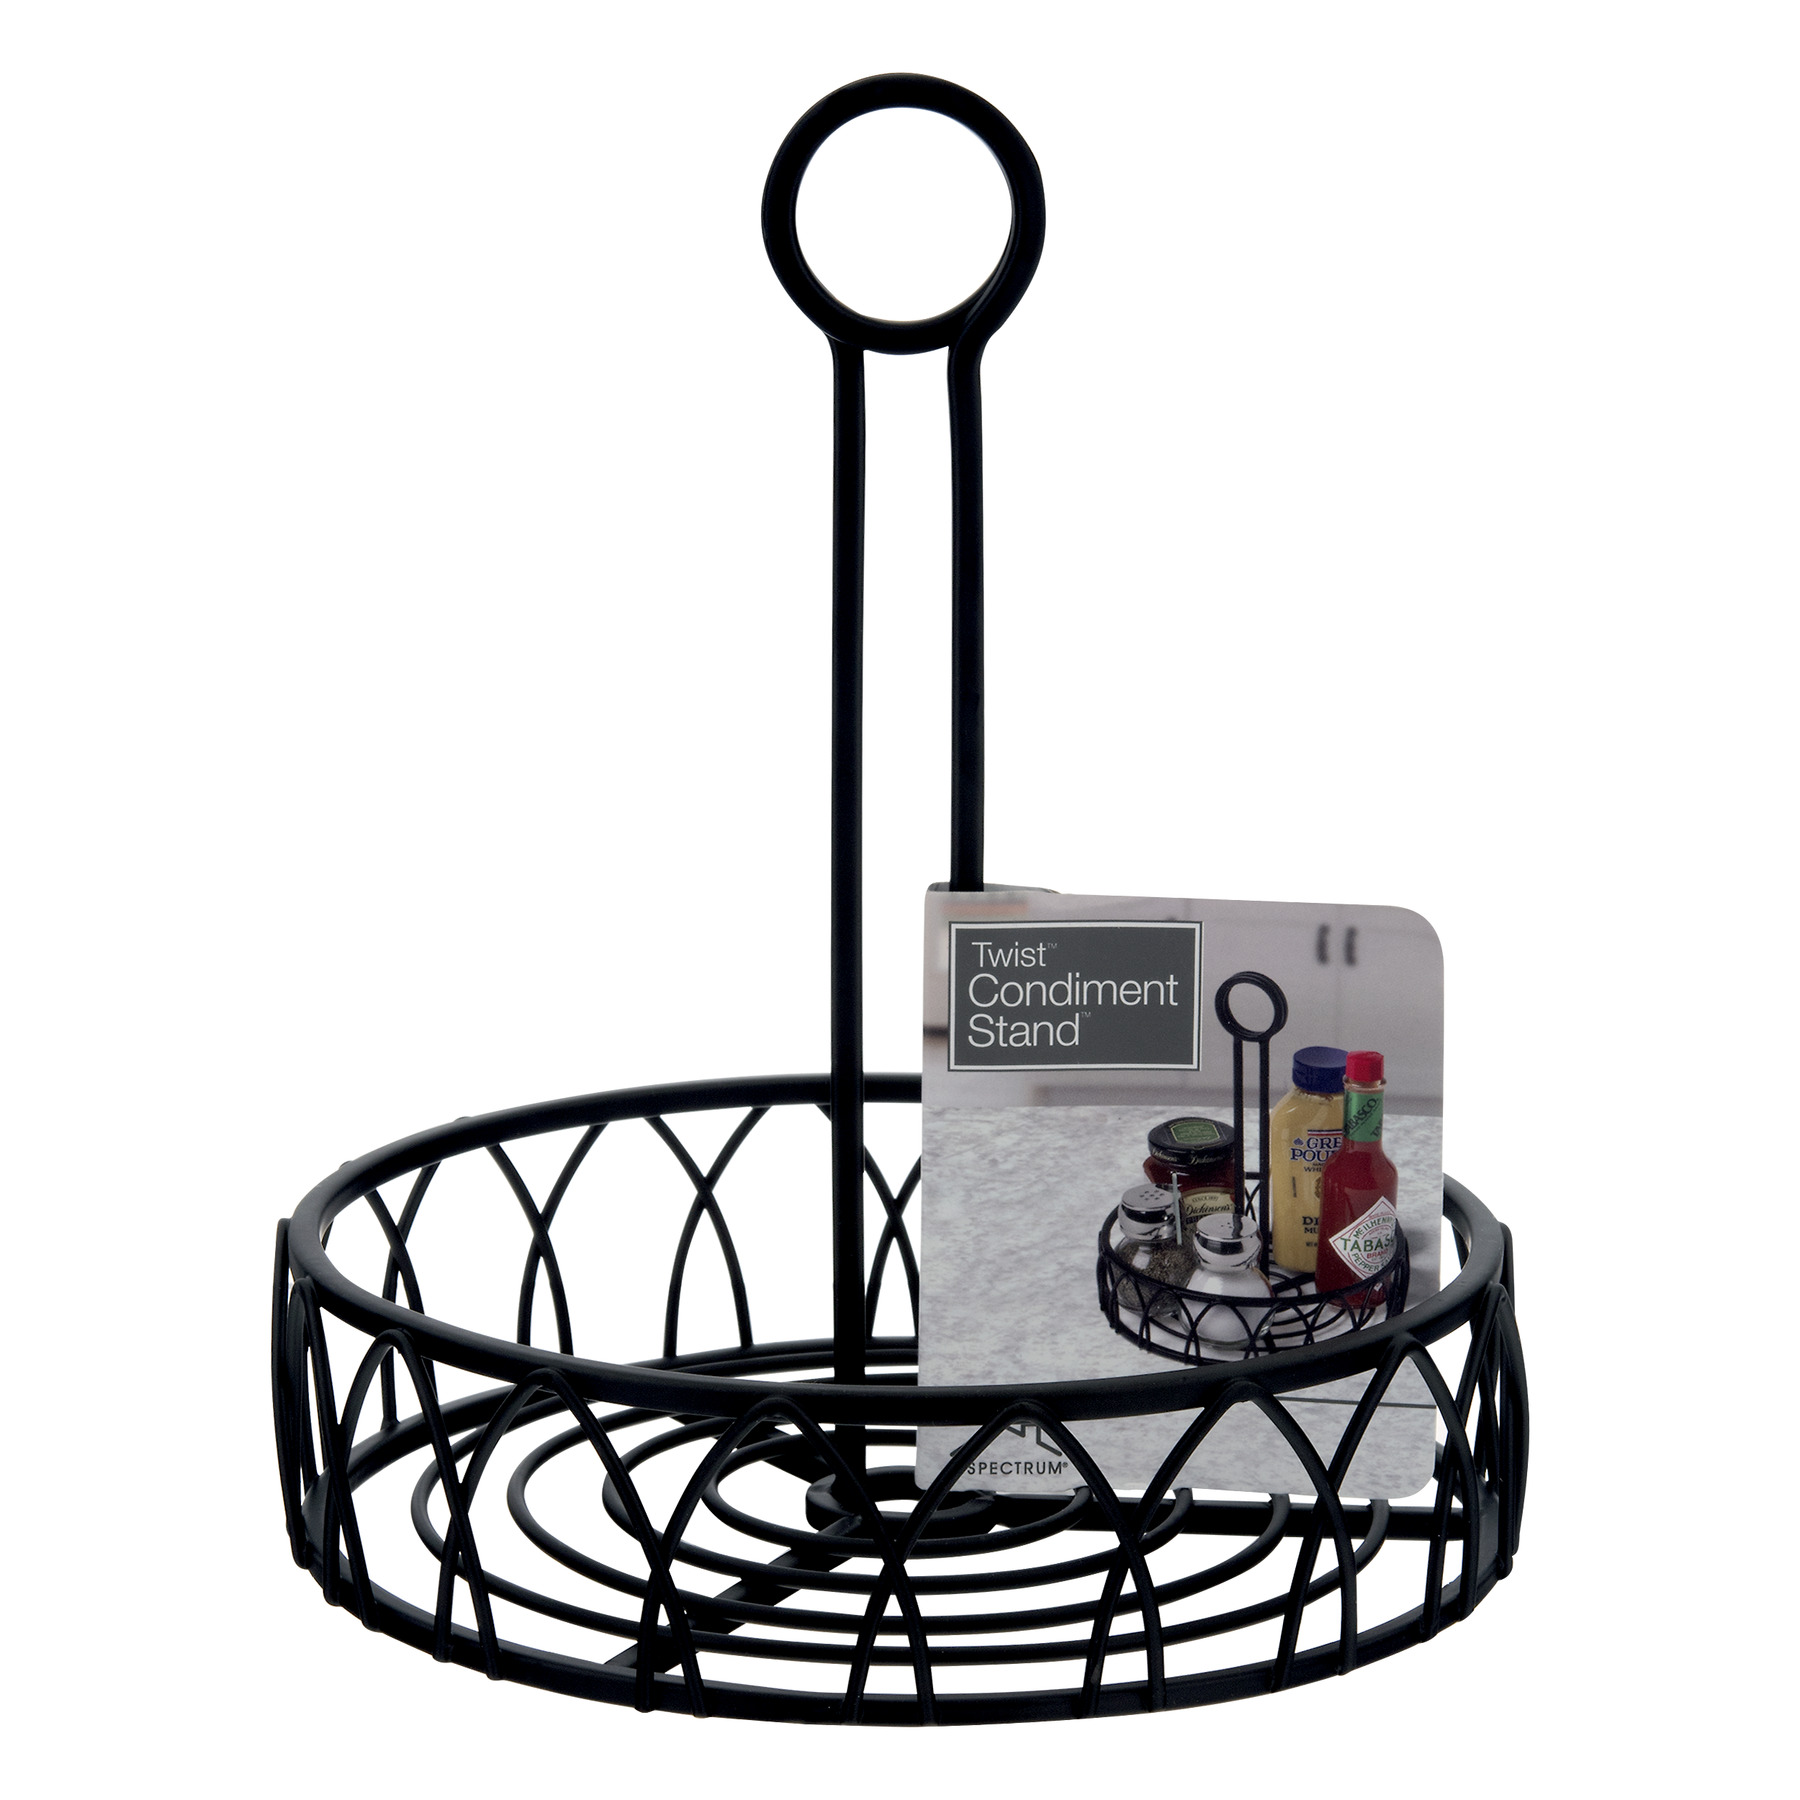 Spectrum Twist Condiment Stand, 1.0 CT